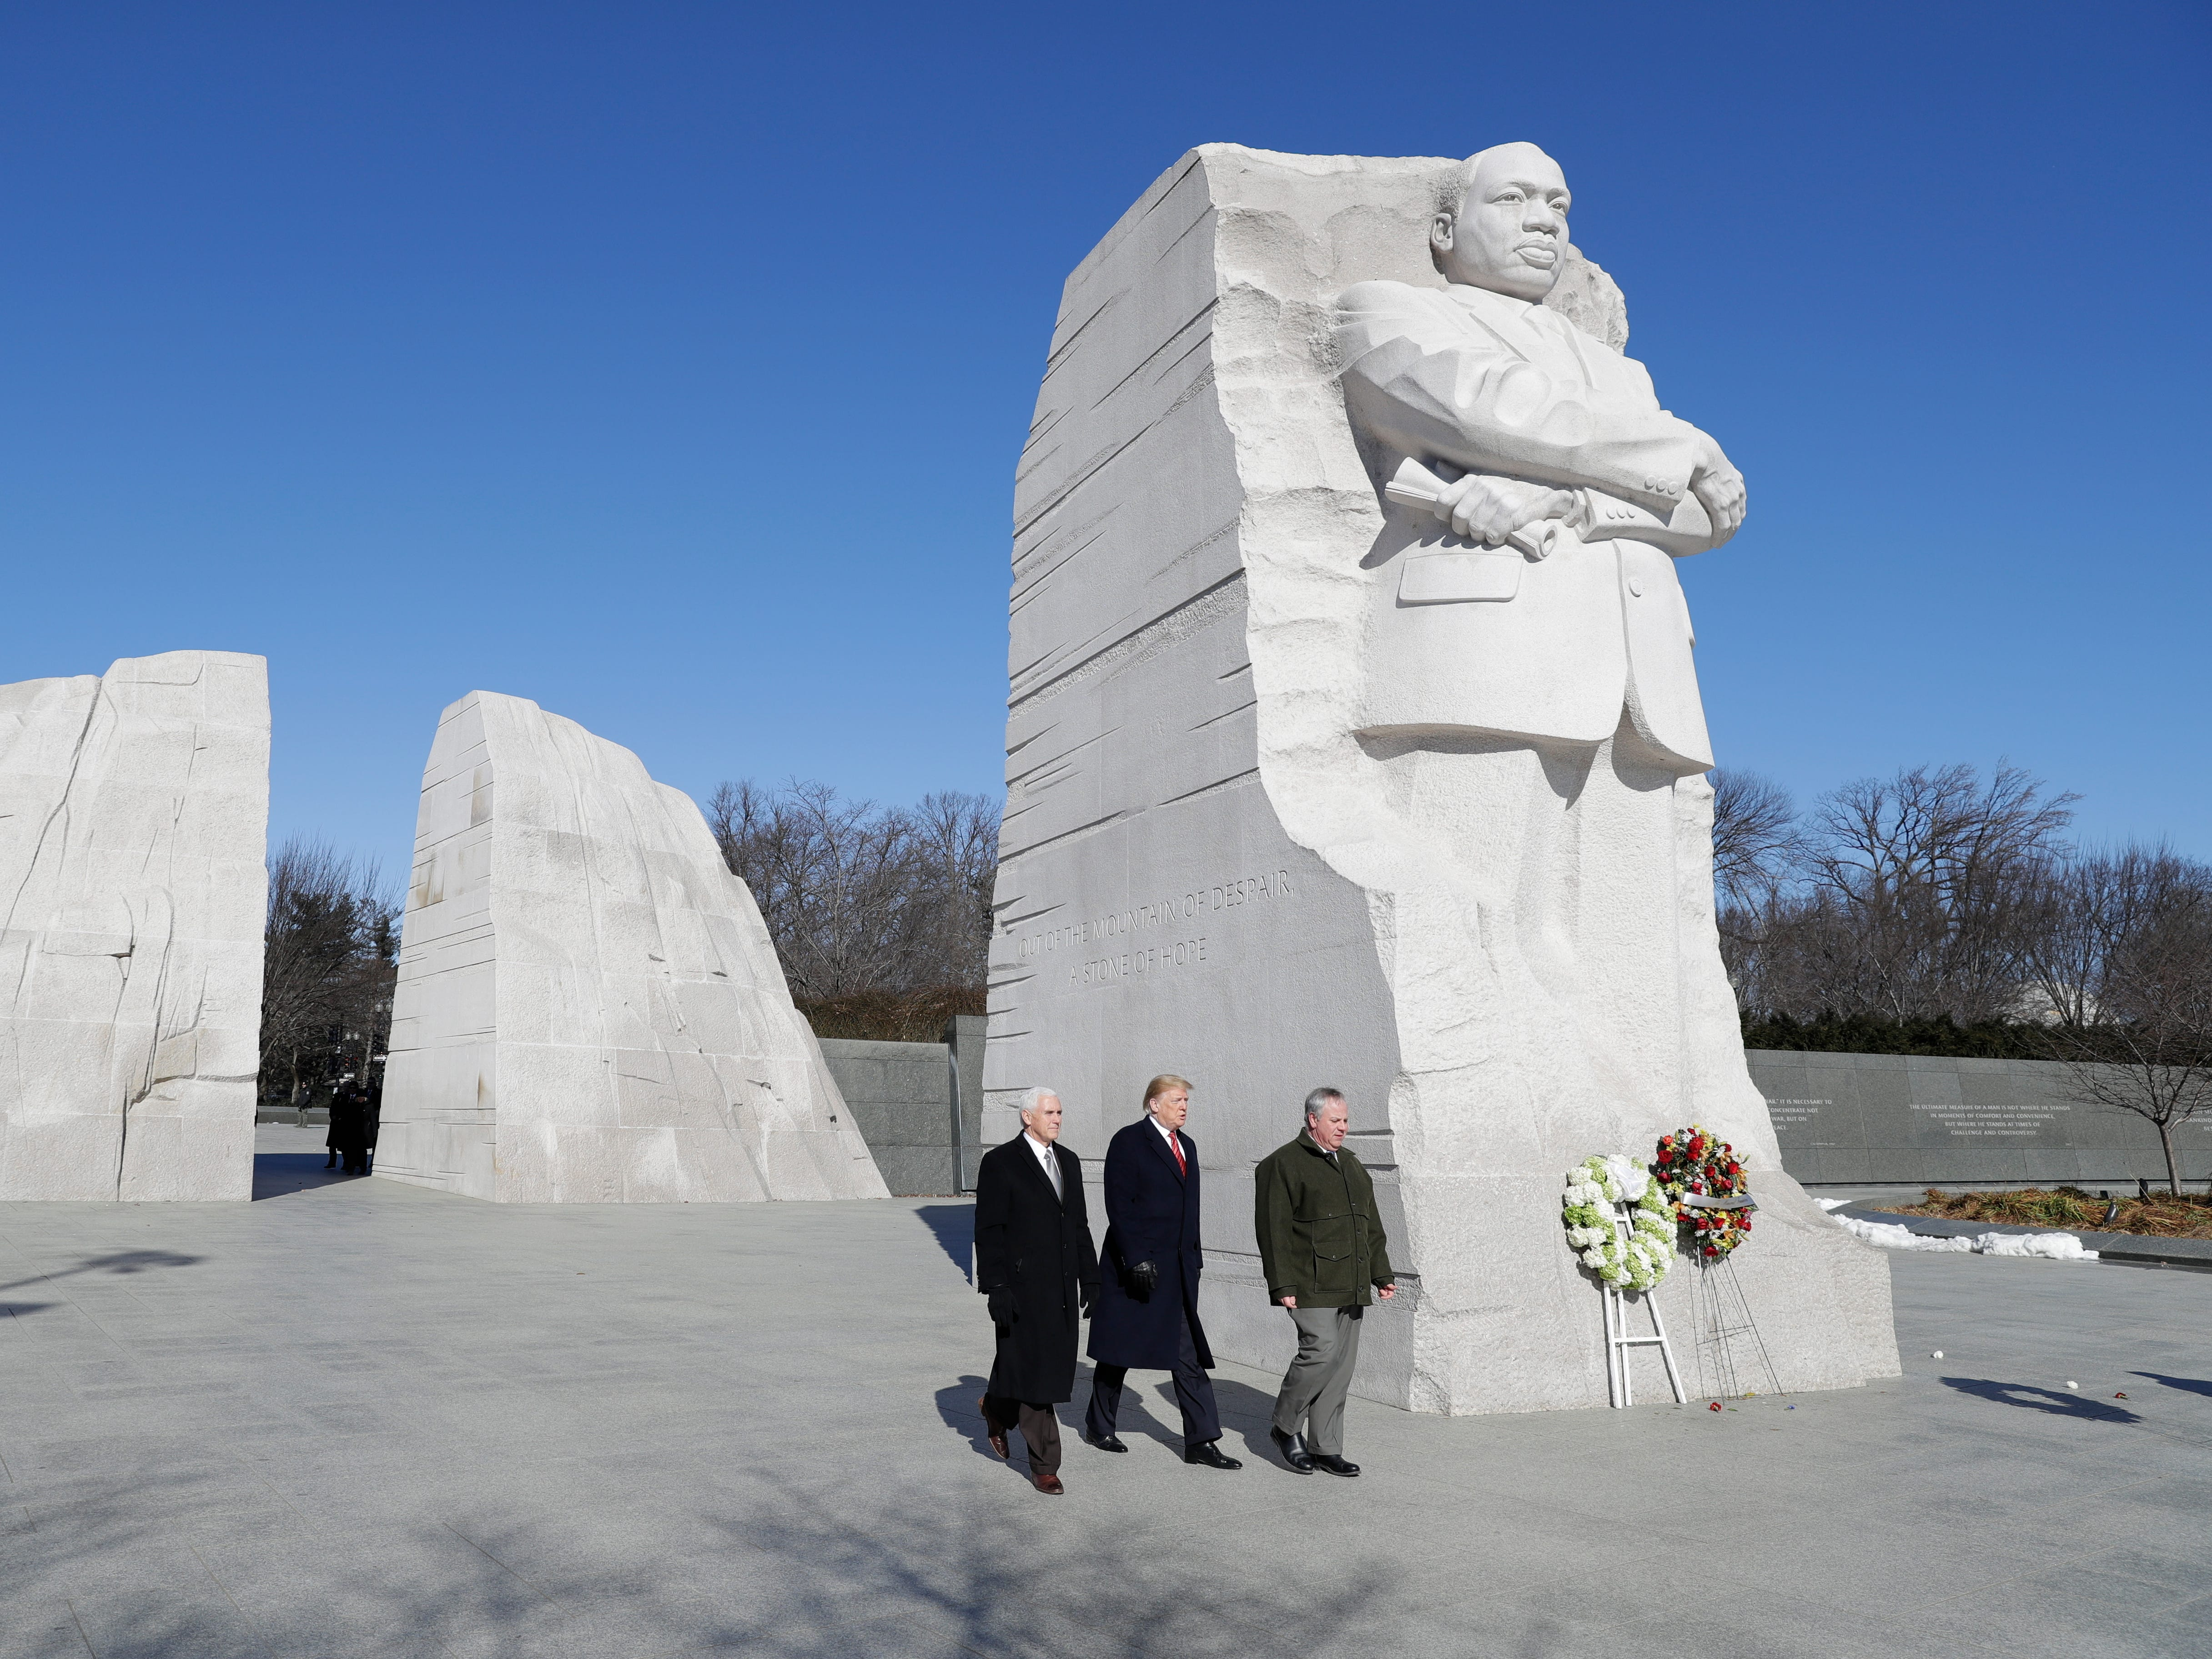 President Donald Trump, Vice President Mike Pence are escorted by Acting Interior Secretary David Bernhardt as they visit the Martin Luther King Jr. in Washington.